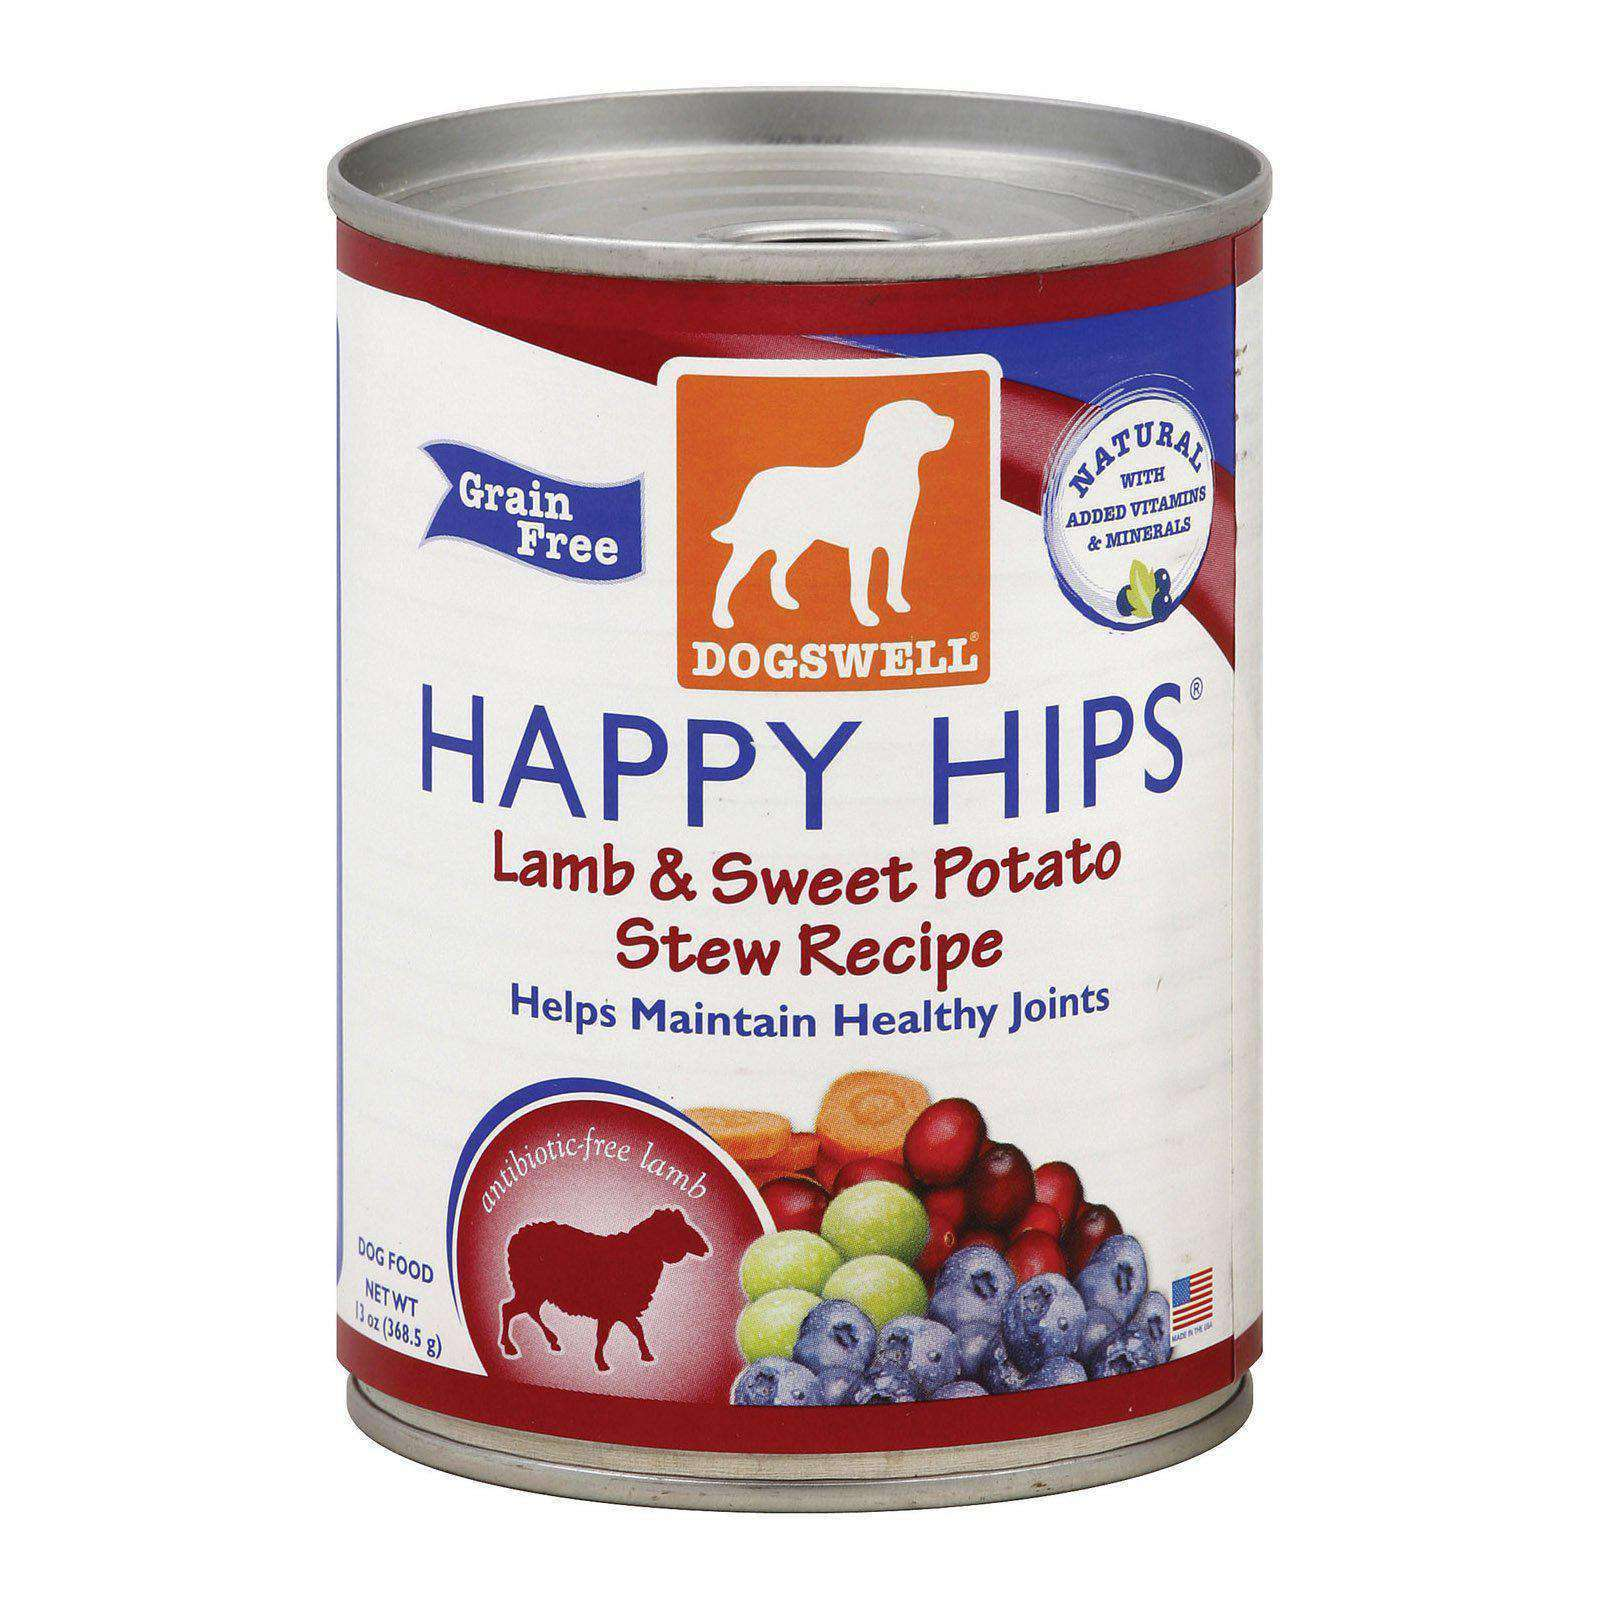 Dogs Well Happy Hips Lamb And Sweet Potato Stew Canned Dog Food - Case Of 12 - 13 Oz.-Dogswell-DirtyFurClothing